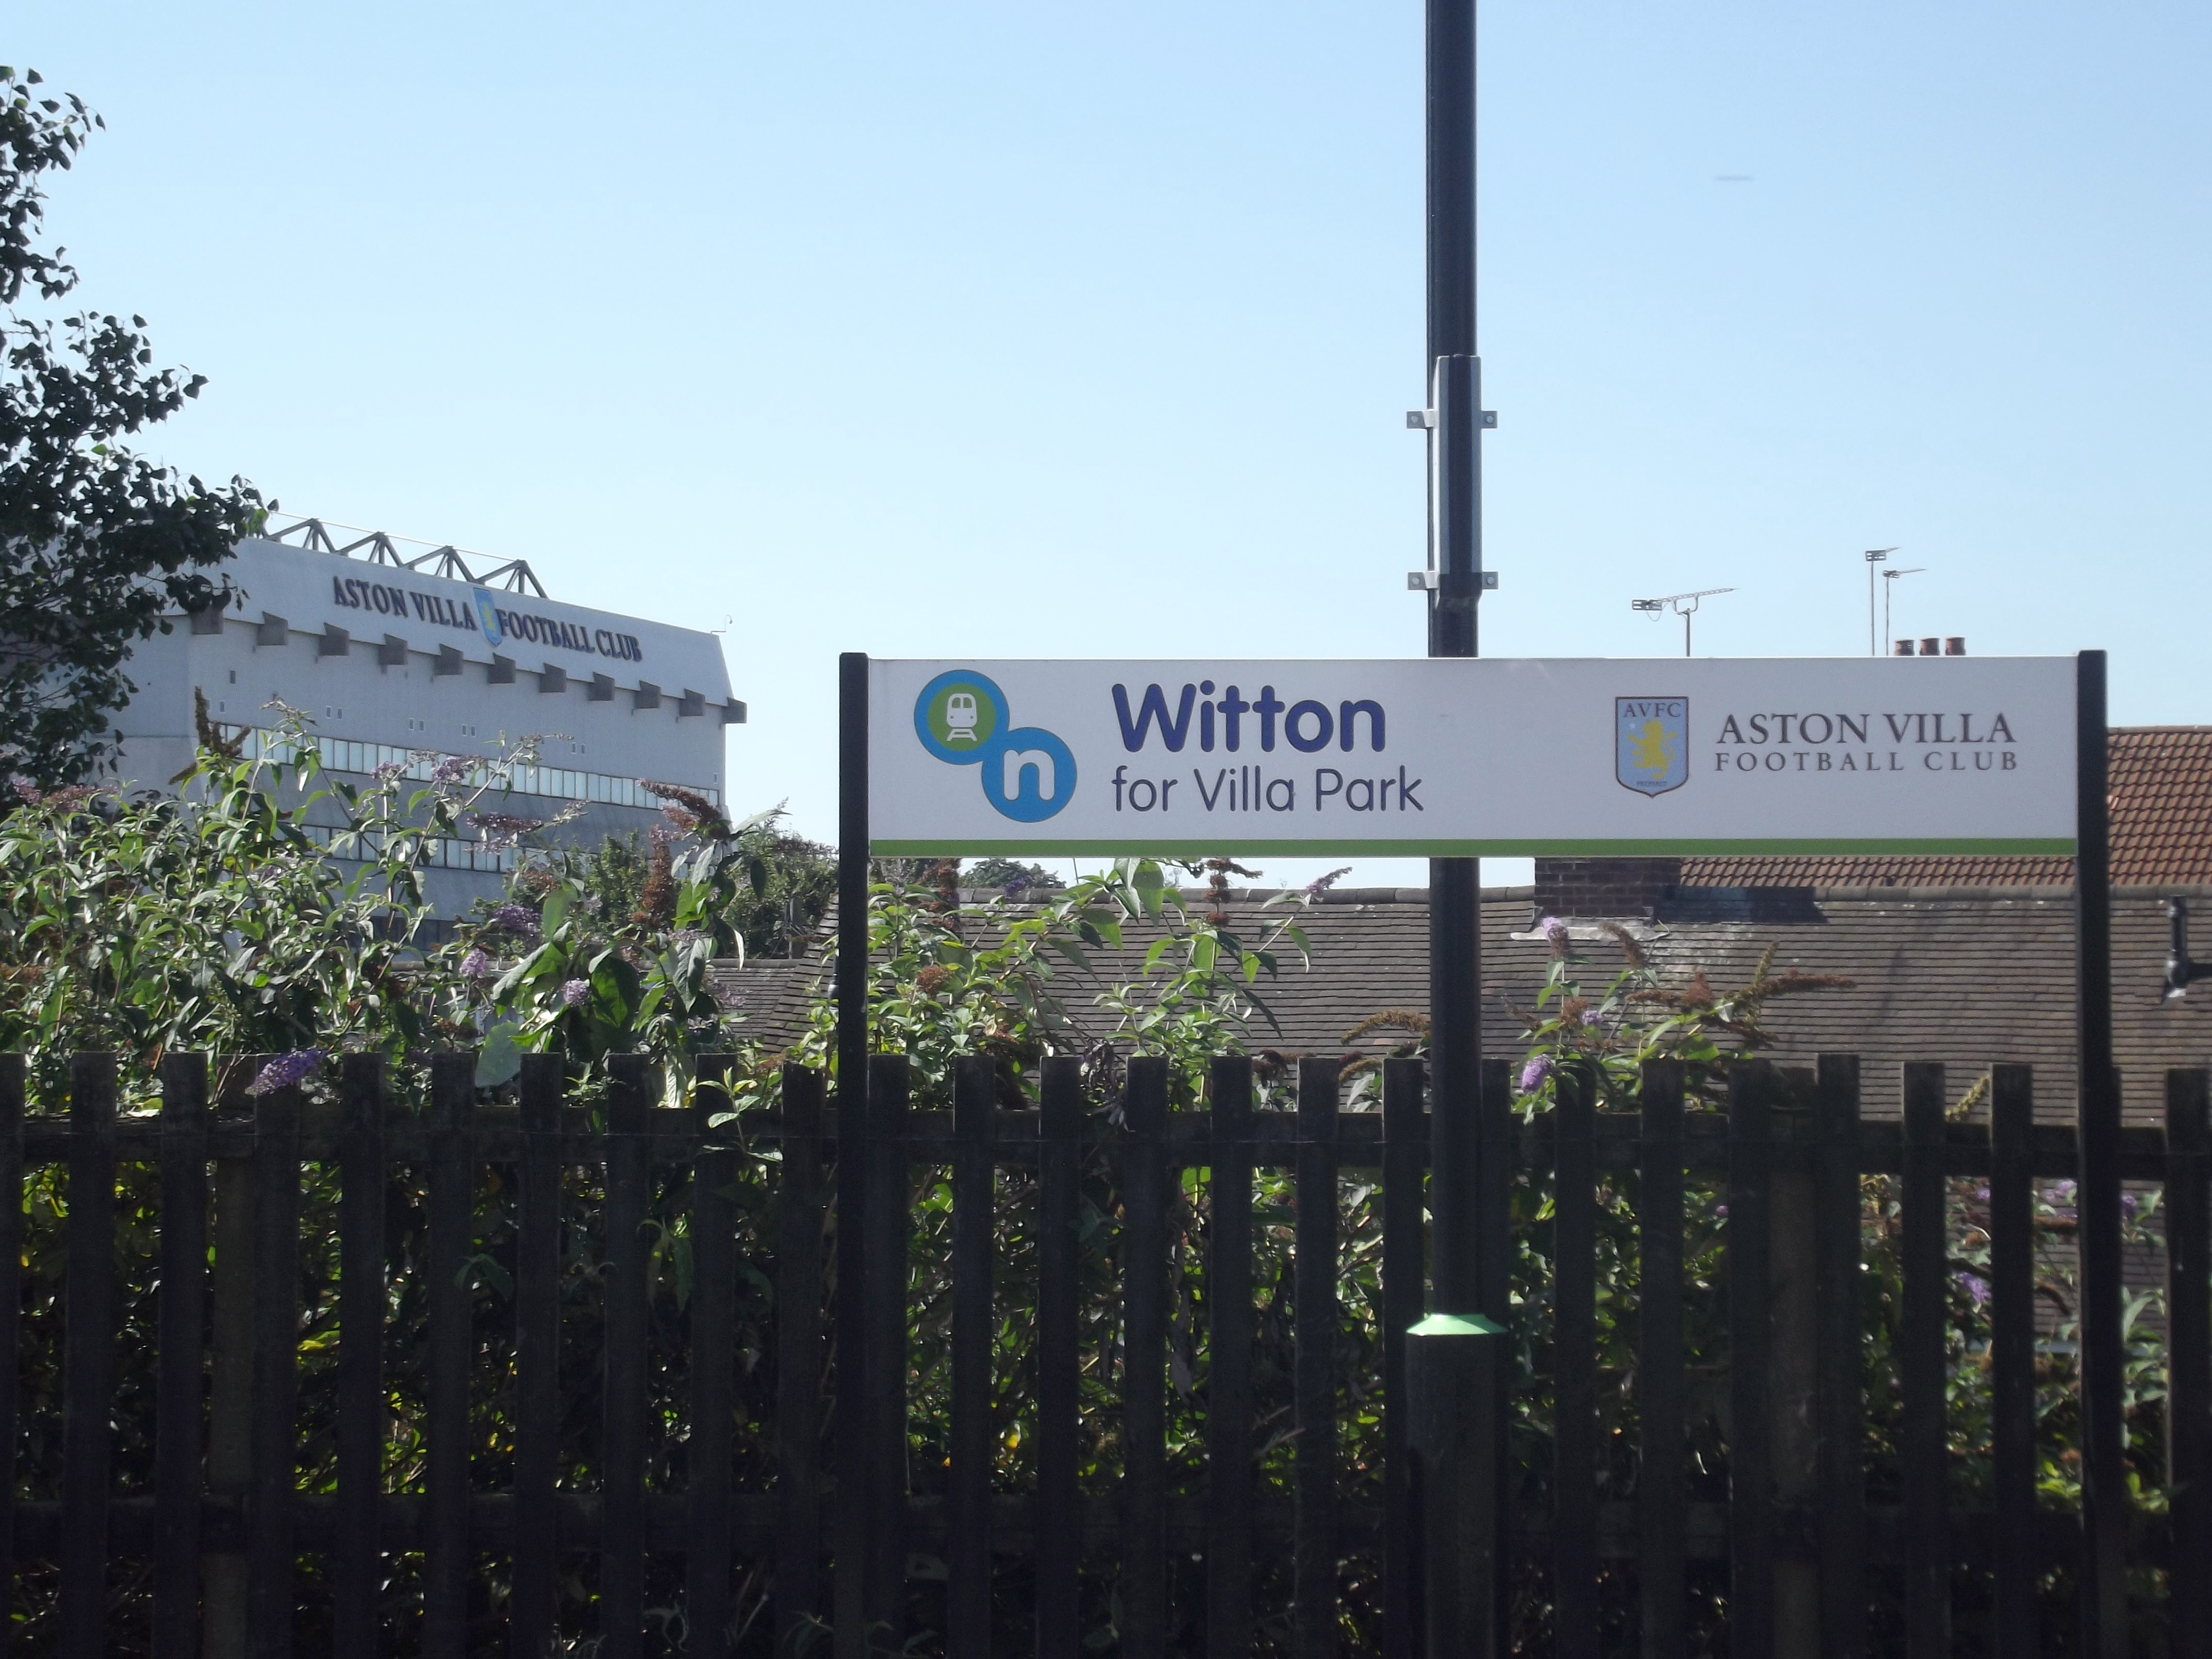 What Station To Get To For Aston Villa